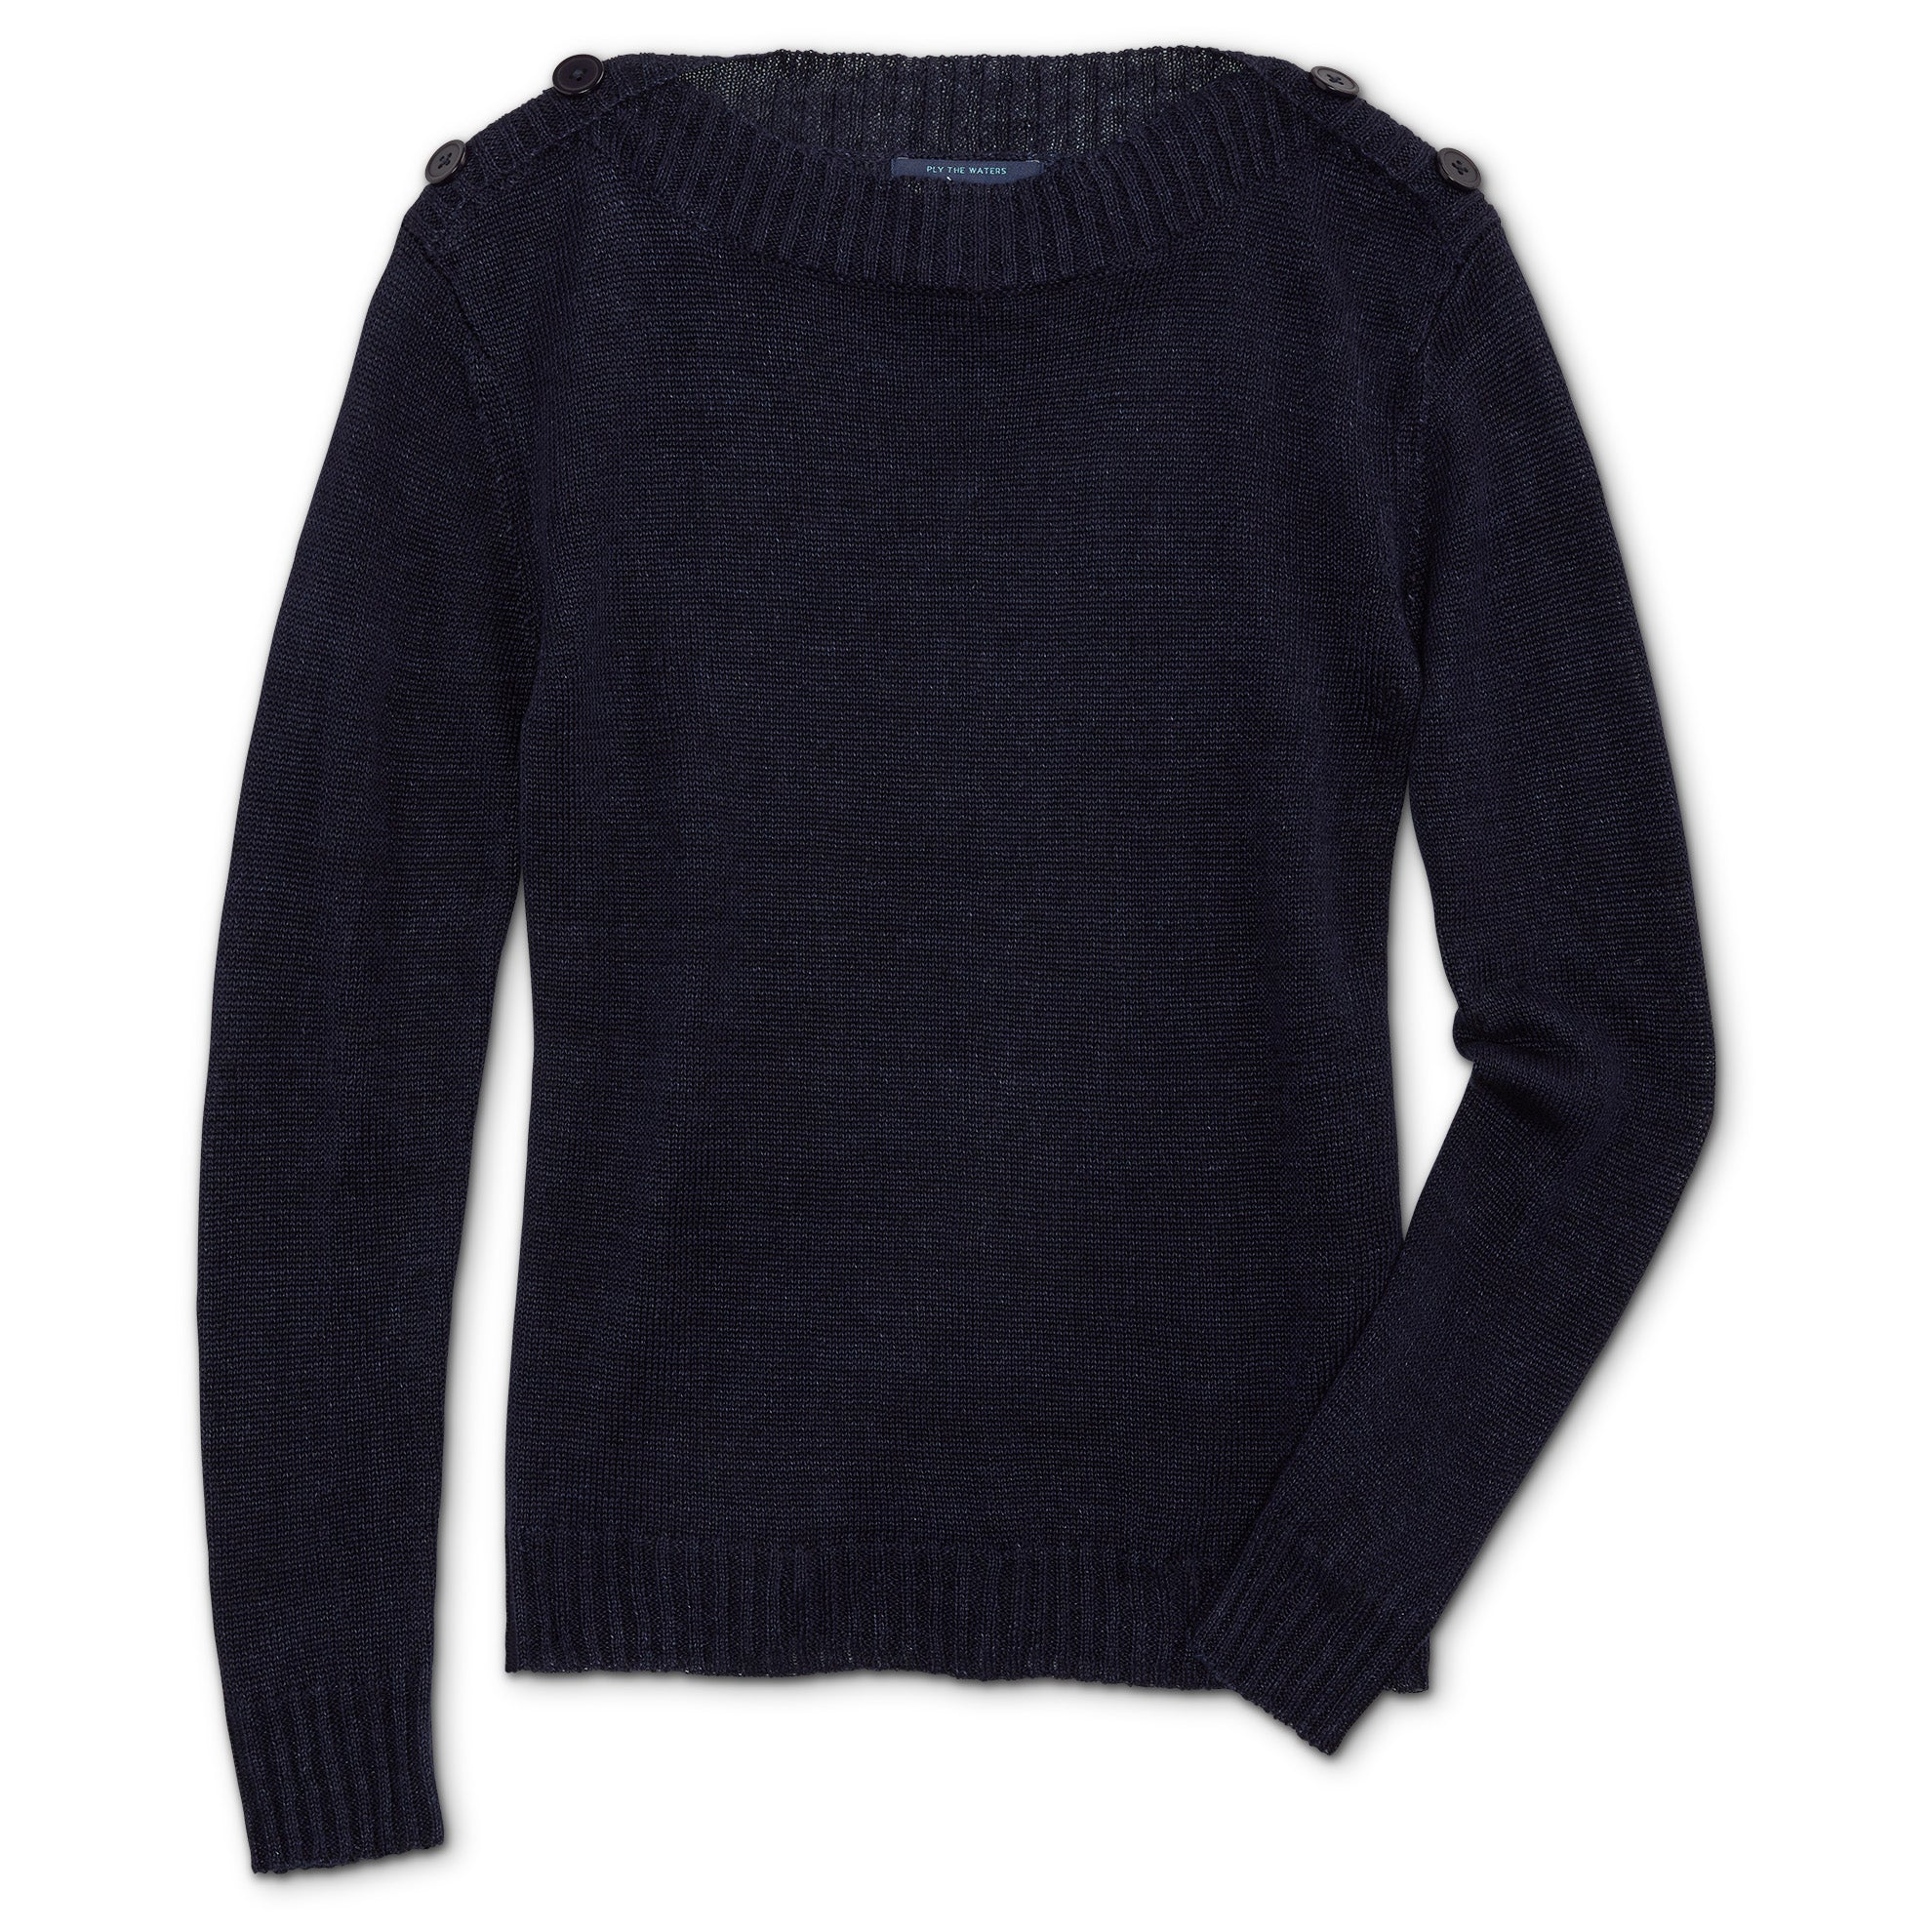 Portofino Boatneck Sweater